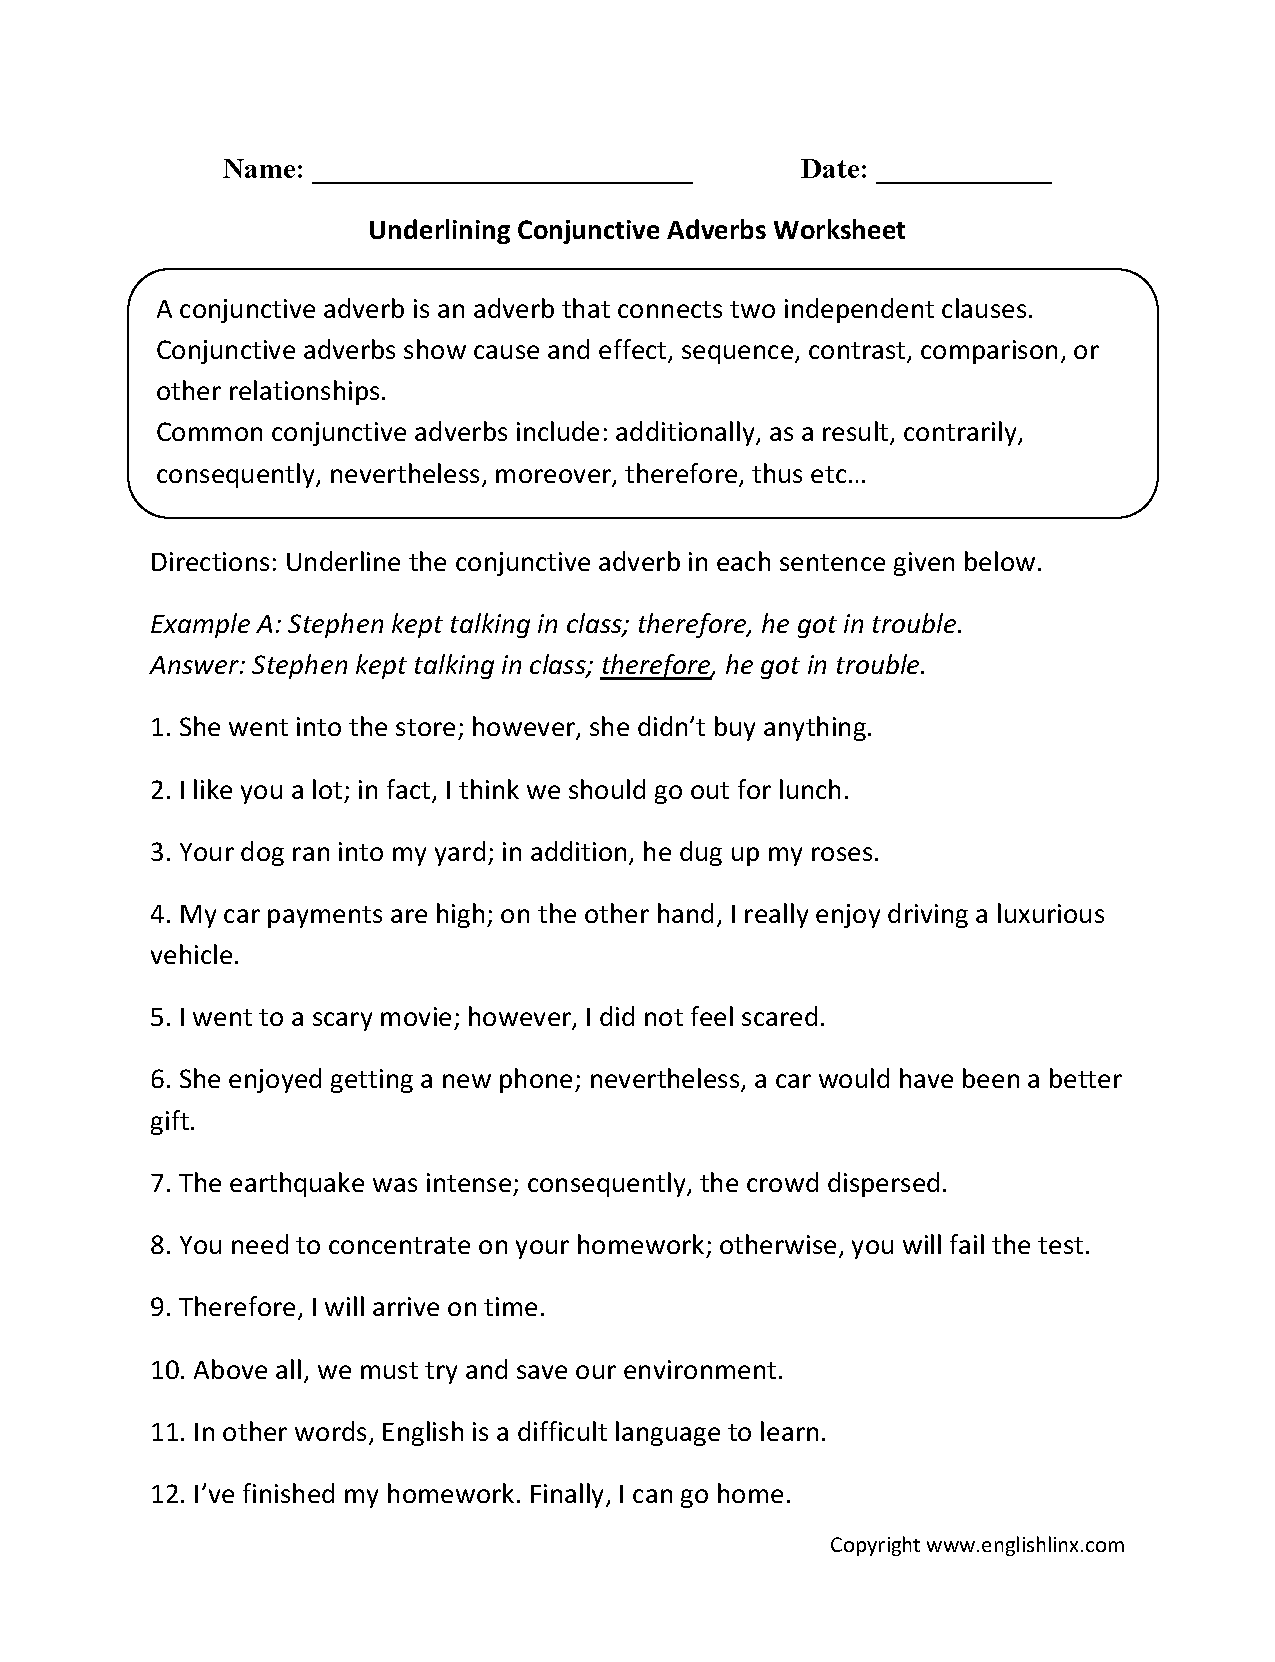 Aldiablosus  Unique Englishlinxcom  Conjunctions Worksheets With Fair Worksheet With Attractive Math Problems For Th Graders Worksheets Also Writing Numbers Worksheet  In Addition Heat Transfer Worksheet Middle School And Percentage Worksheets Pdf As Well As Real World Math Worksheets Additionally Beginning Addition Worksheets From Englishlinxcom With Aldiablosus  Fair Englishlinxcom  Conjunctions Worksheets With Attractive Worksheet And Unique Math Problems For Th Graders Worksheets Also Writing Numbers Worksheet  In Addition Heat Transfer Worksheet Middle School From Englishlinxcom